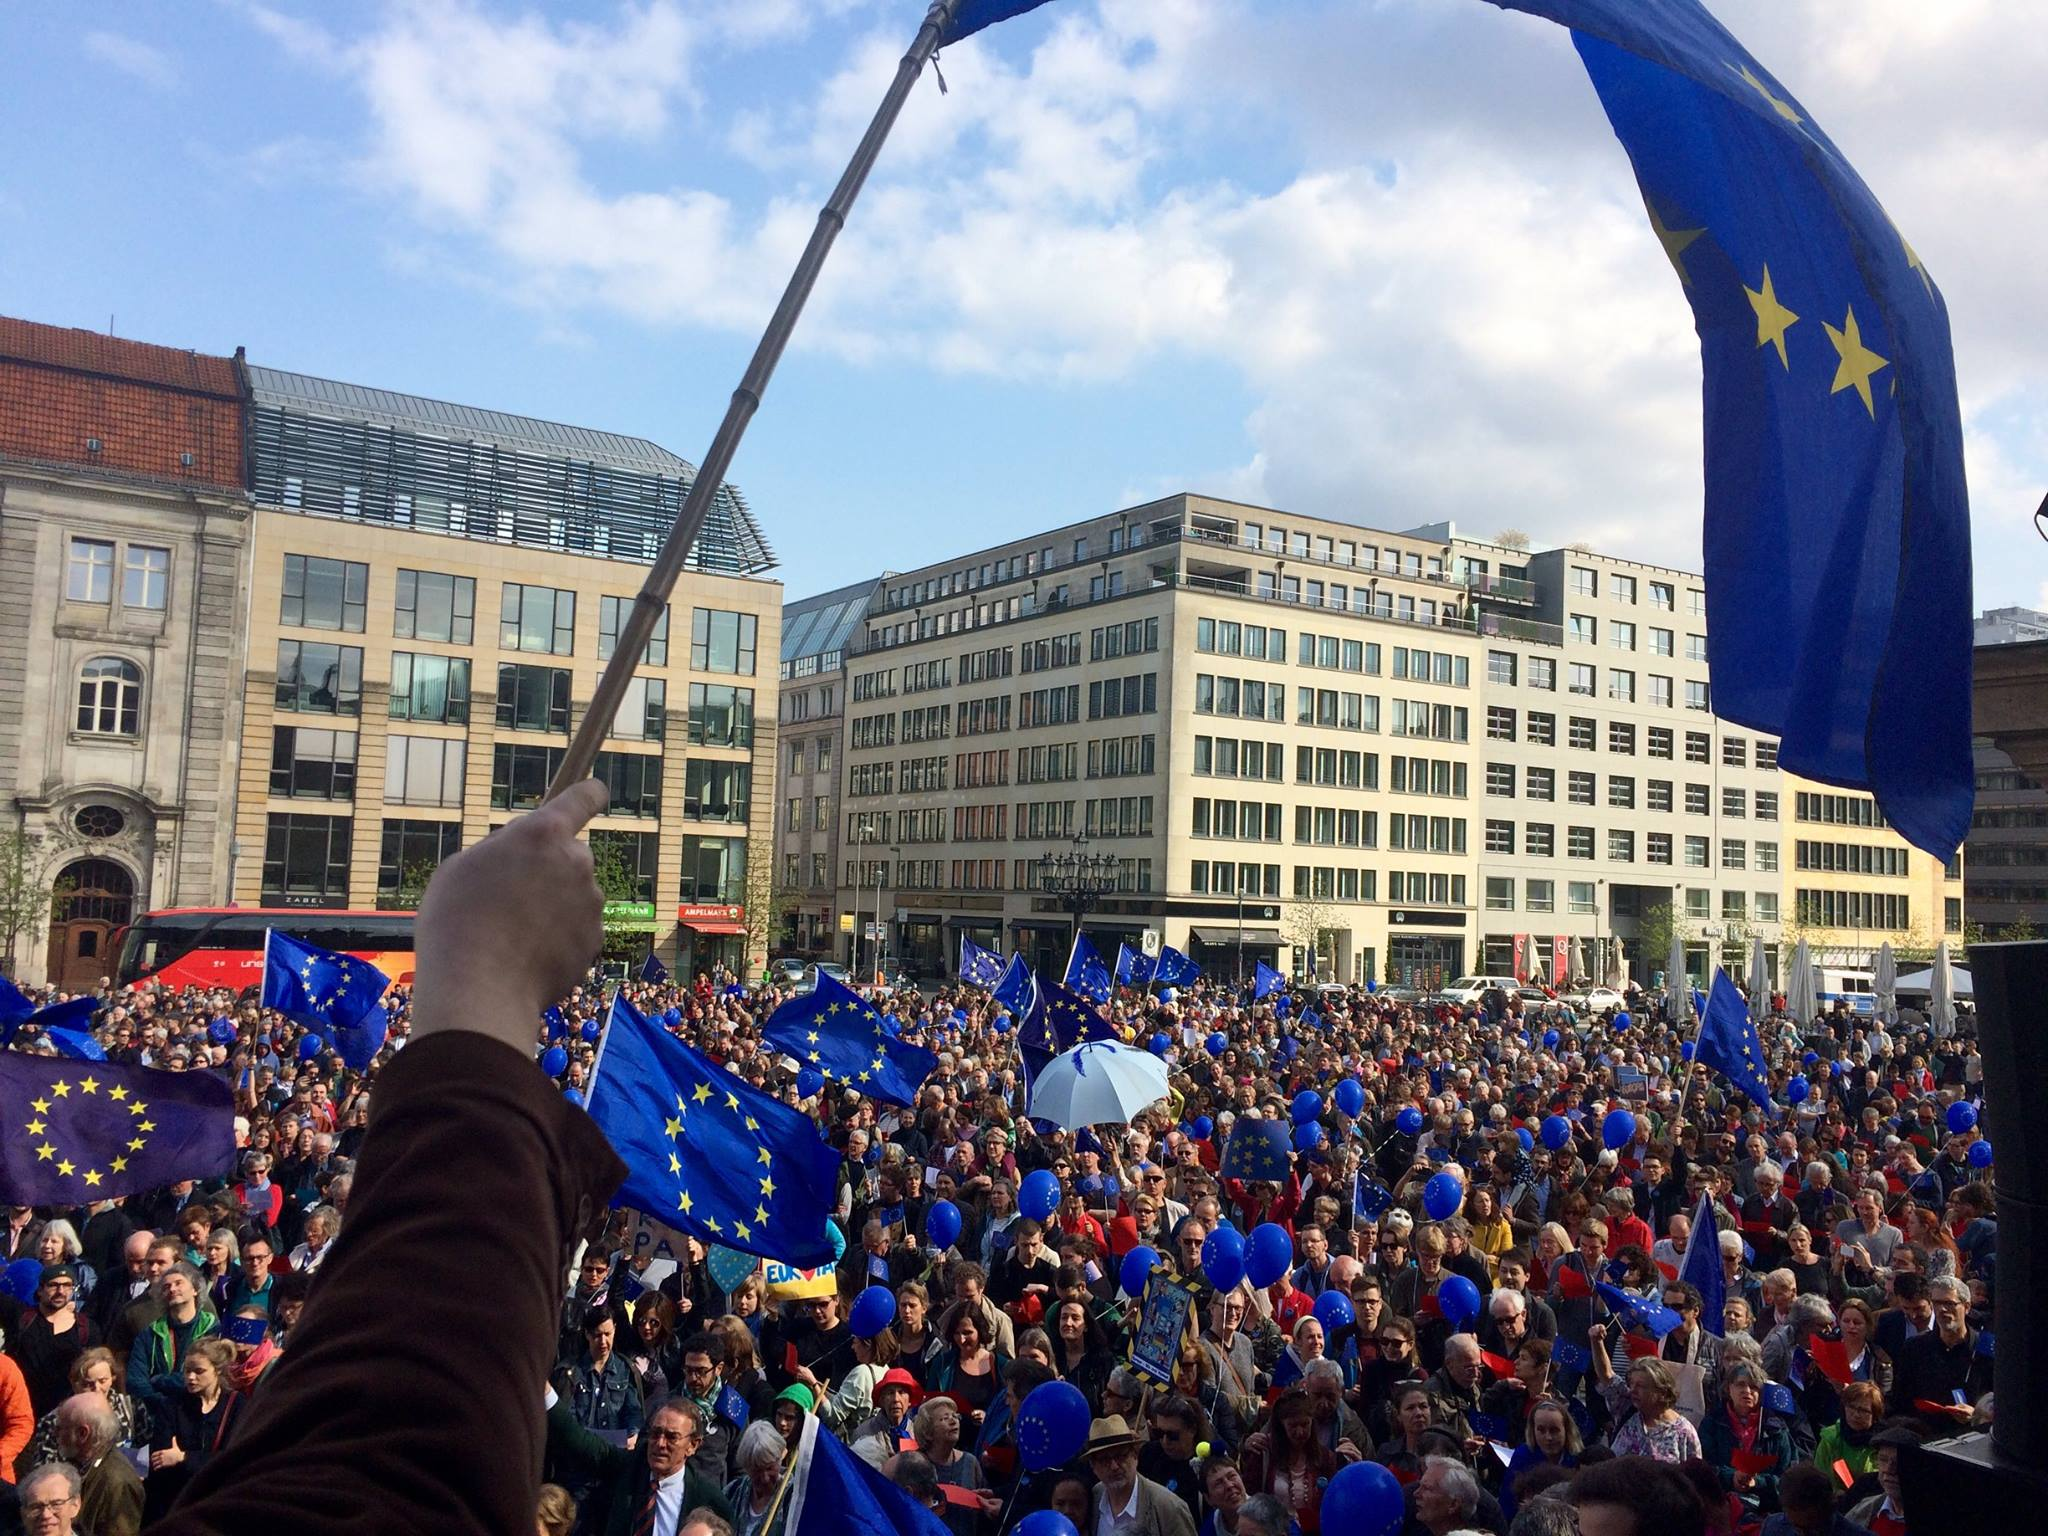 Berlin, 2. April 2017 – 5 Min. bei Pulse of Europe – Clara Mavellia